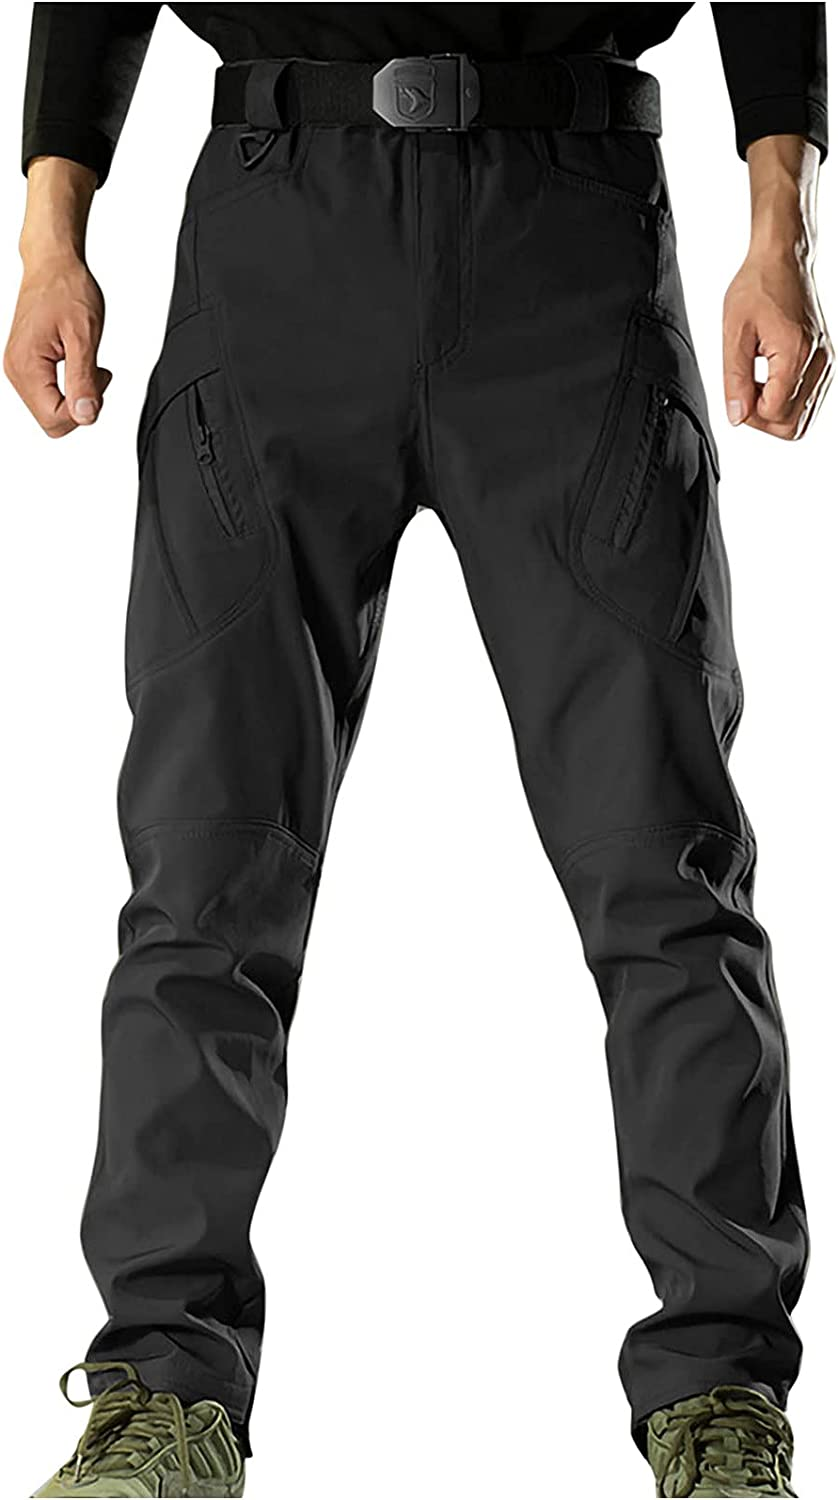 QTOCIO Men's Tactical Pants Cheap Work New product! New type Sweatpants Chino W